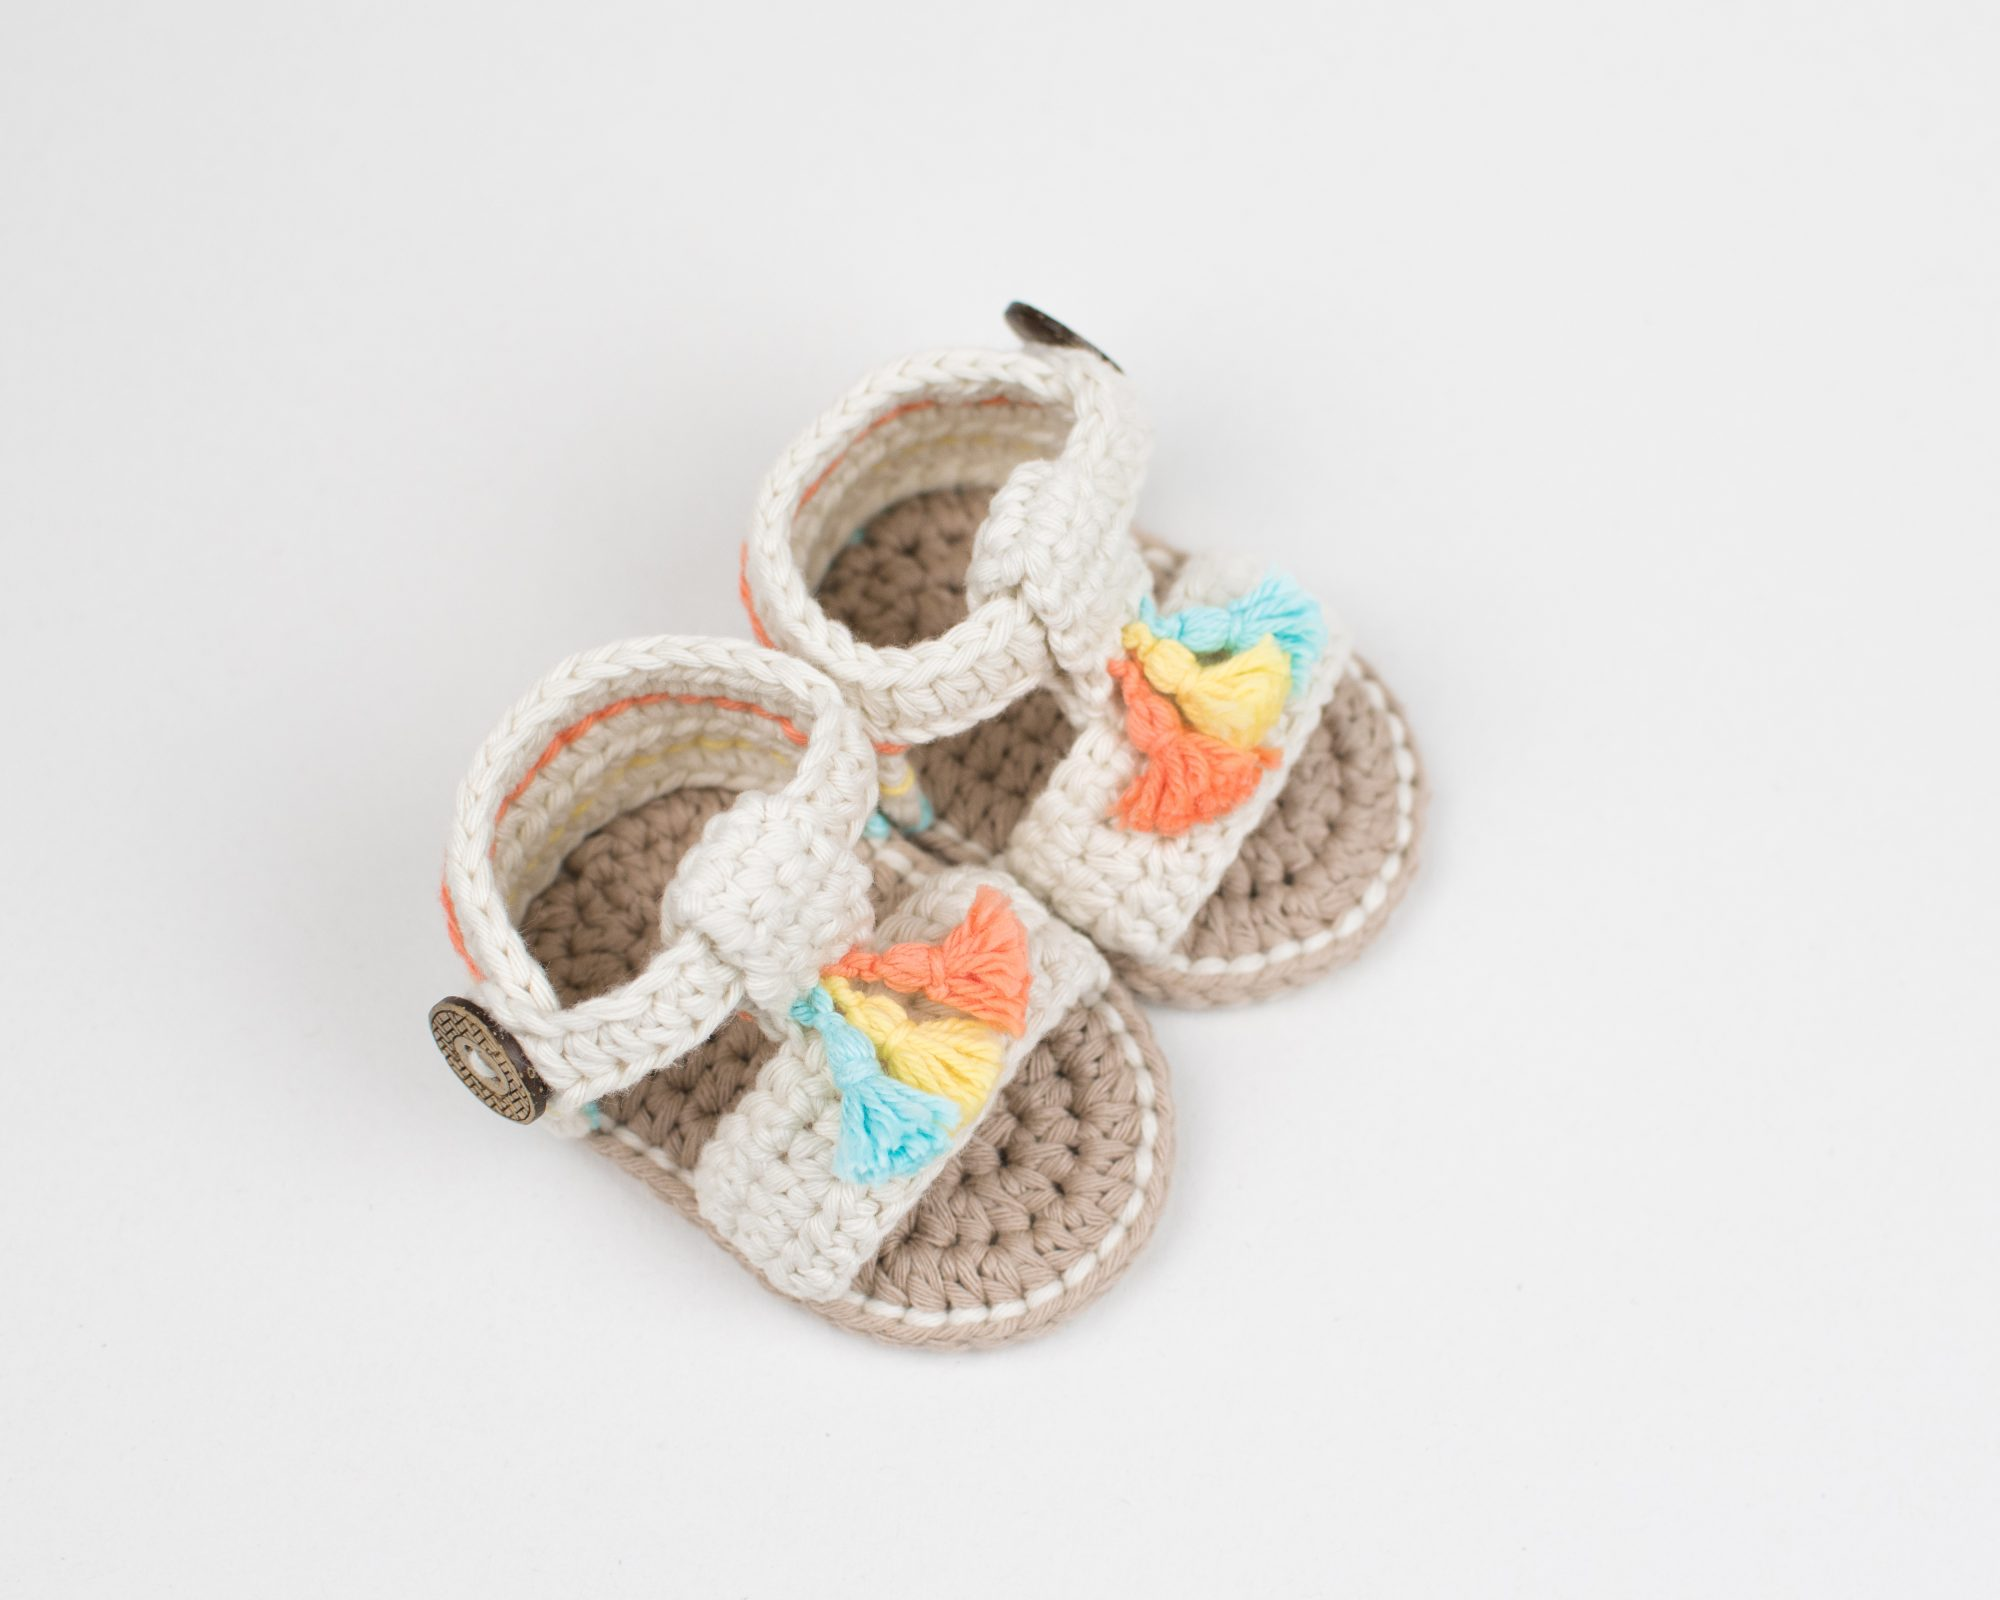 bb559b68abc0ed The pattern is made with two of my favorite yarns Rico Creative Cotton in  Aran weight and Paintbox Yarns Cotton in weight DK. The sandals match with  the ...